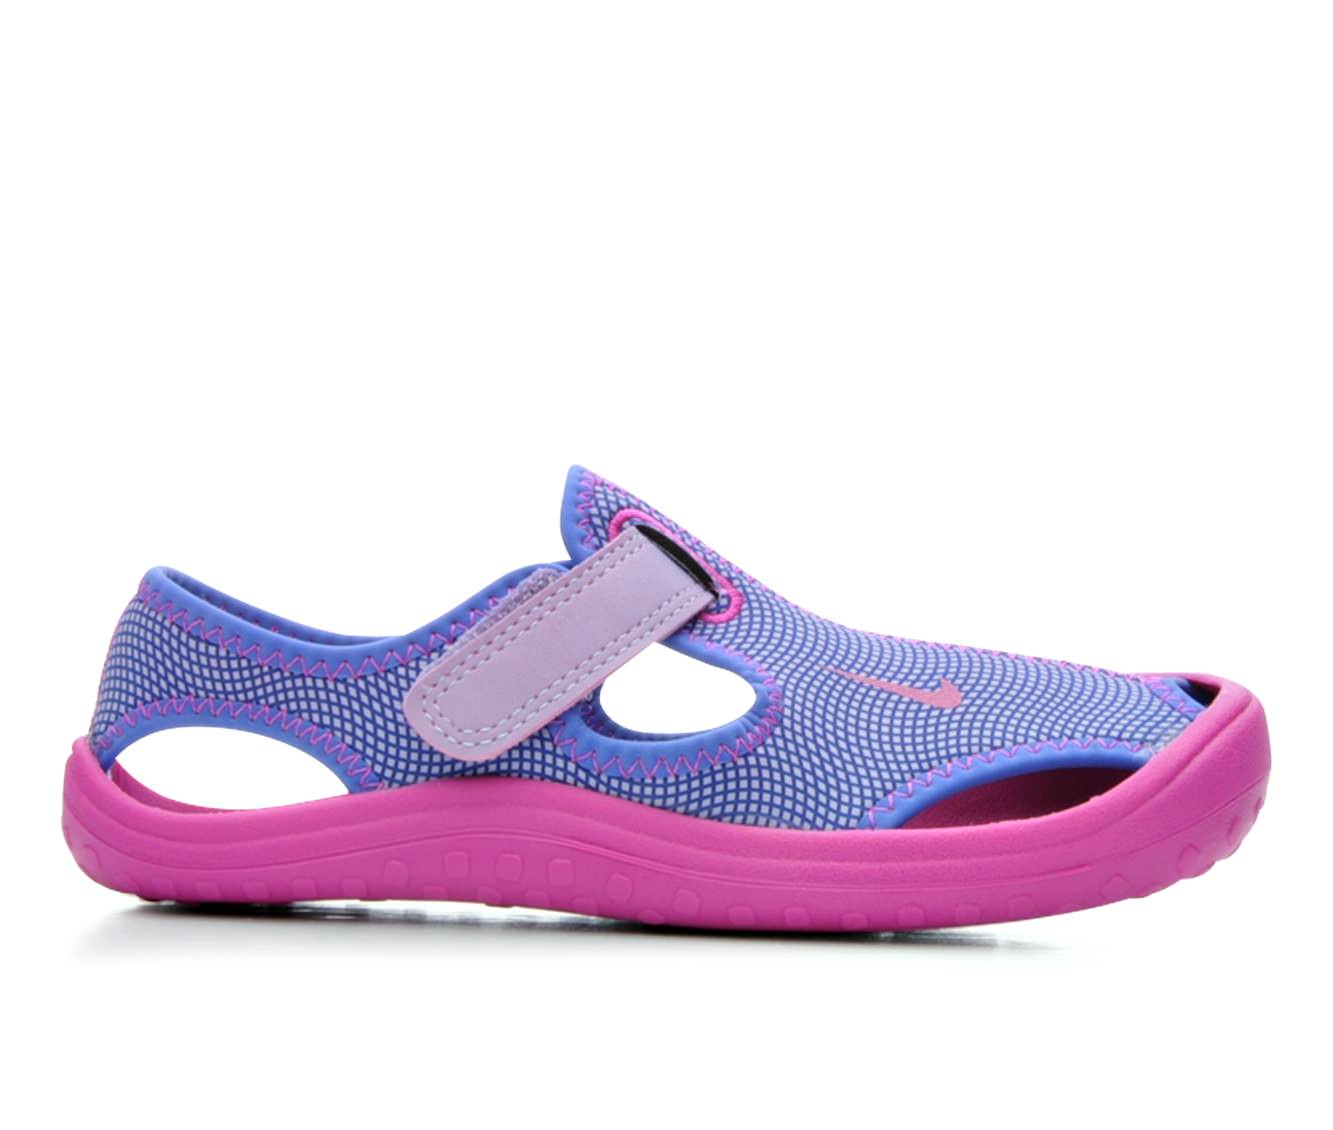 Girls' Nike Sunray Protect 17 G Sandals (Purple)